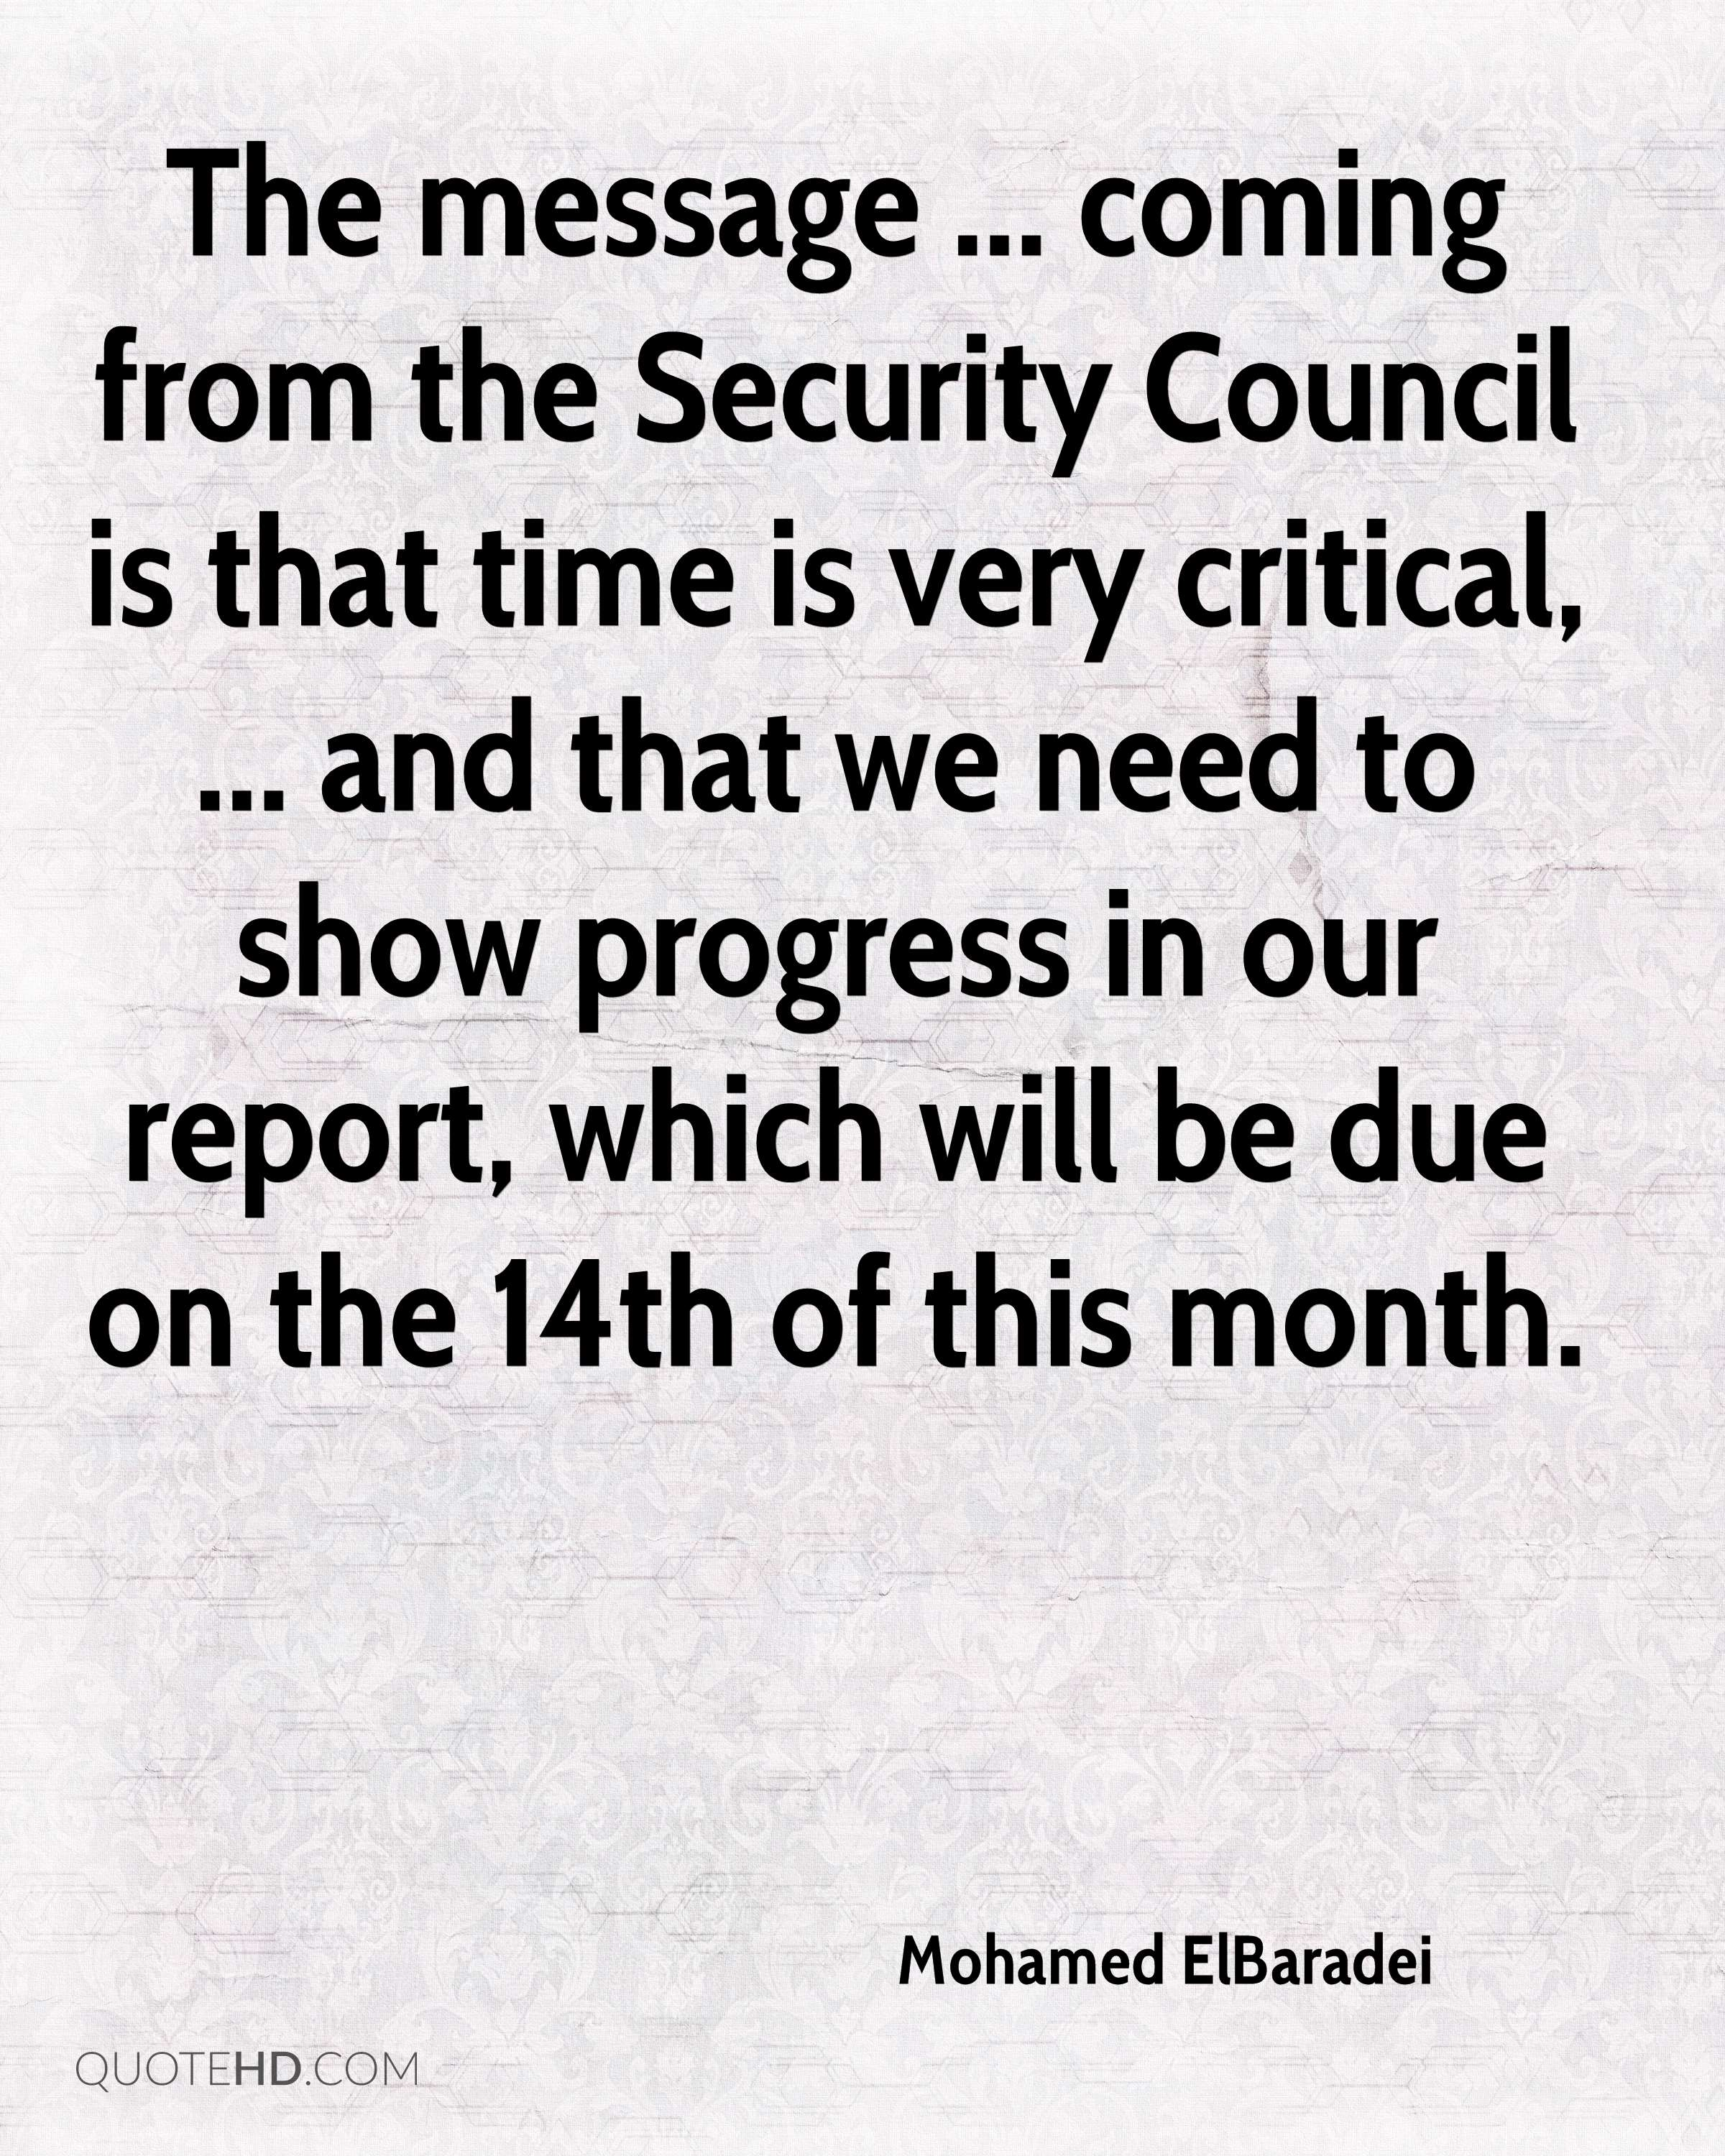 The message ... coming from the Security Council is that time is very critical, ... and that we need to show progress in our report, which will be due on the 14th of this month.